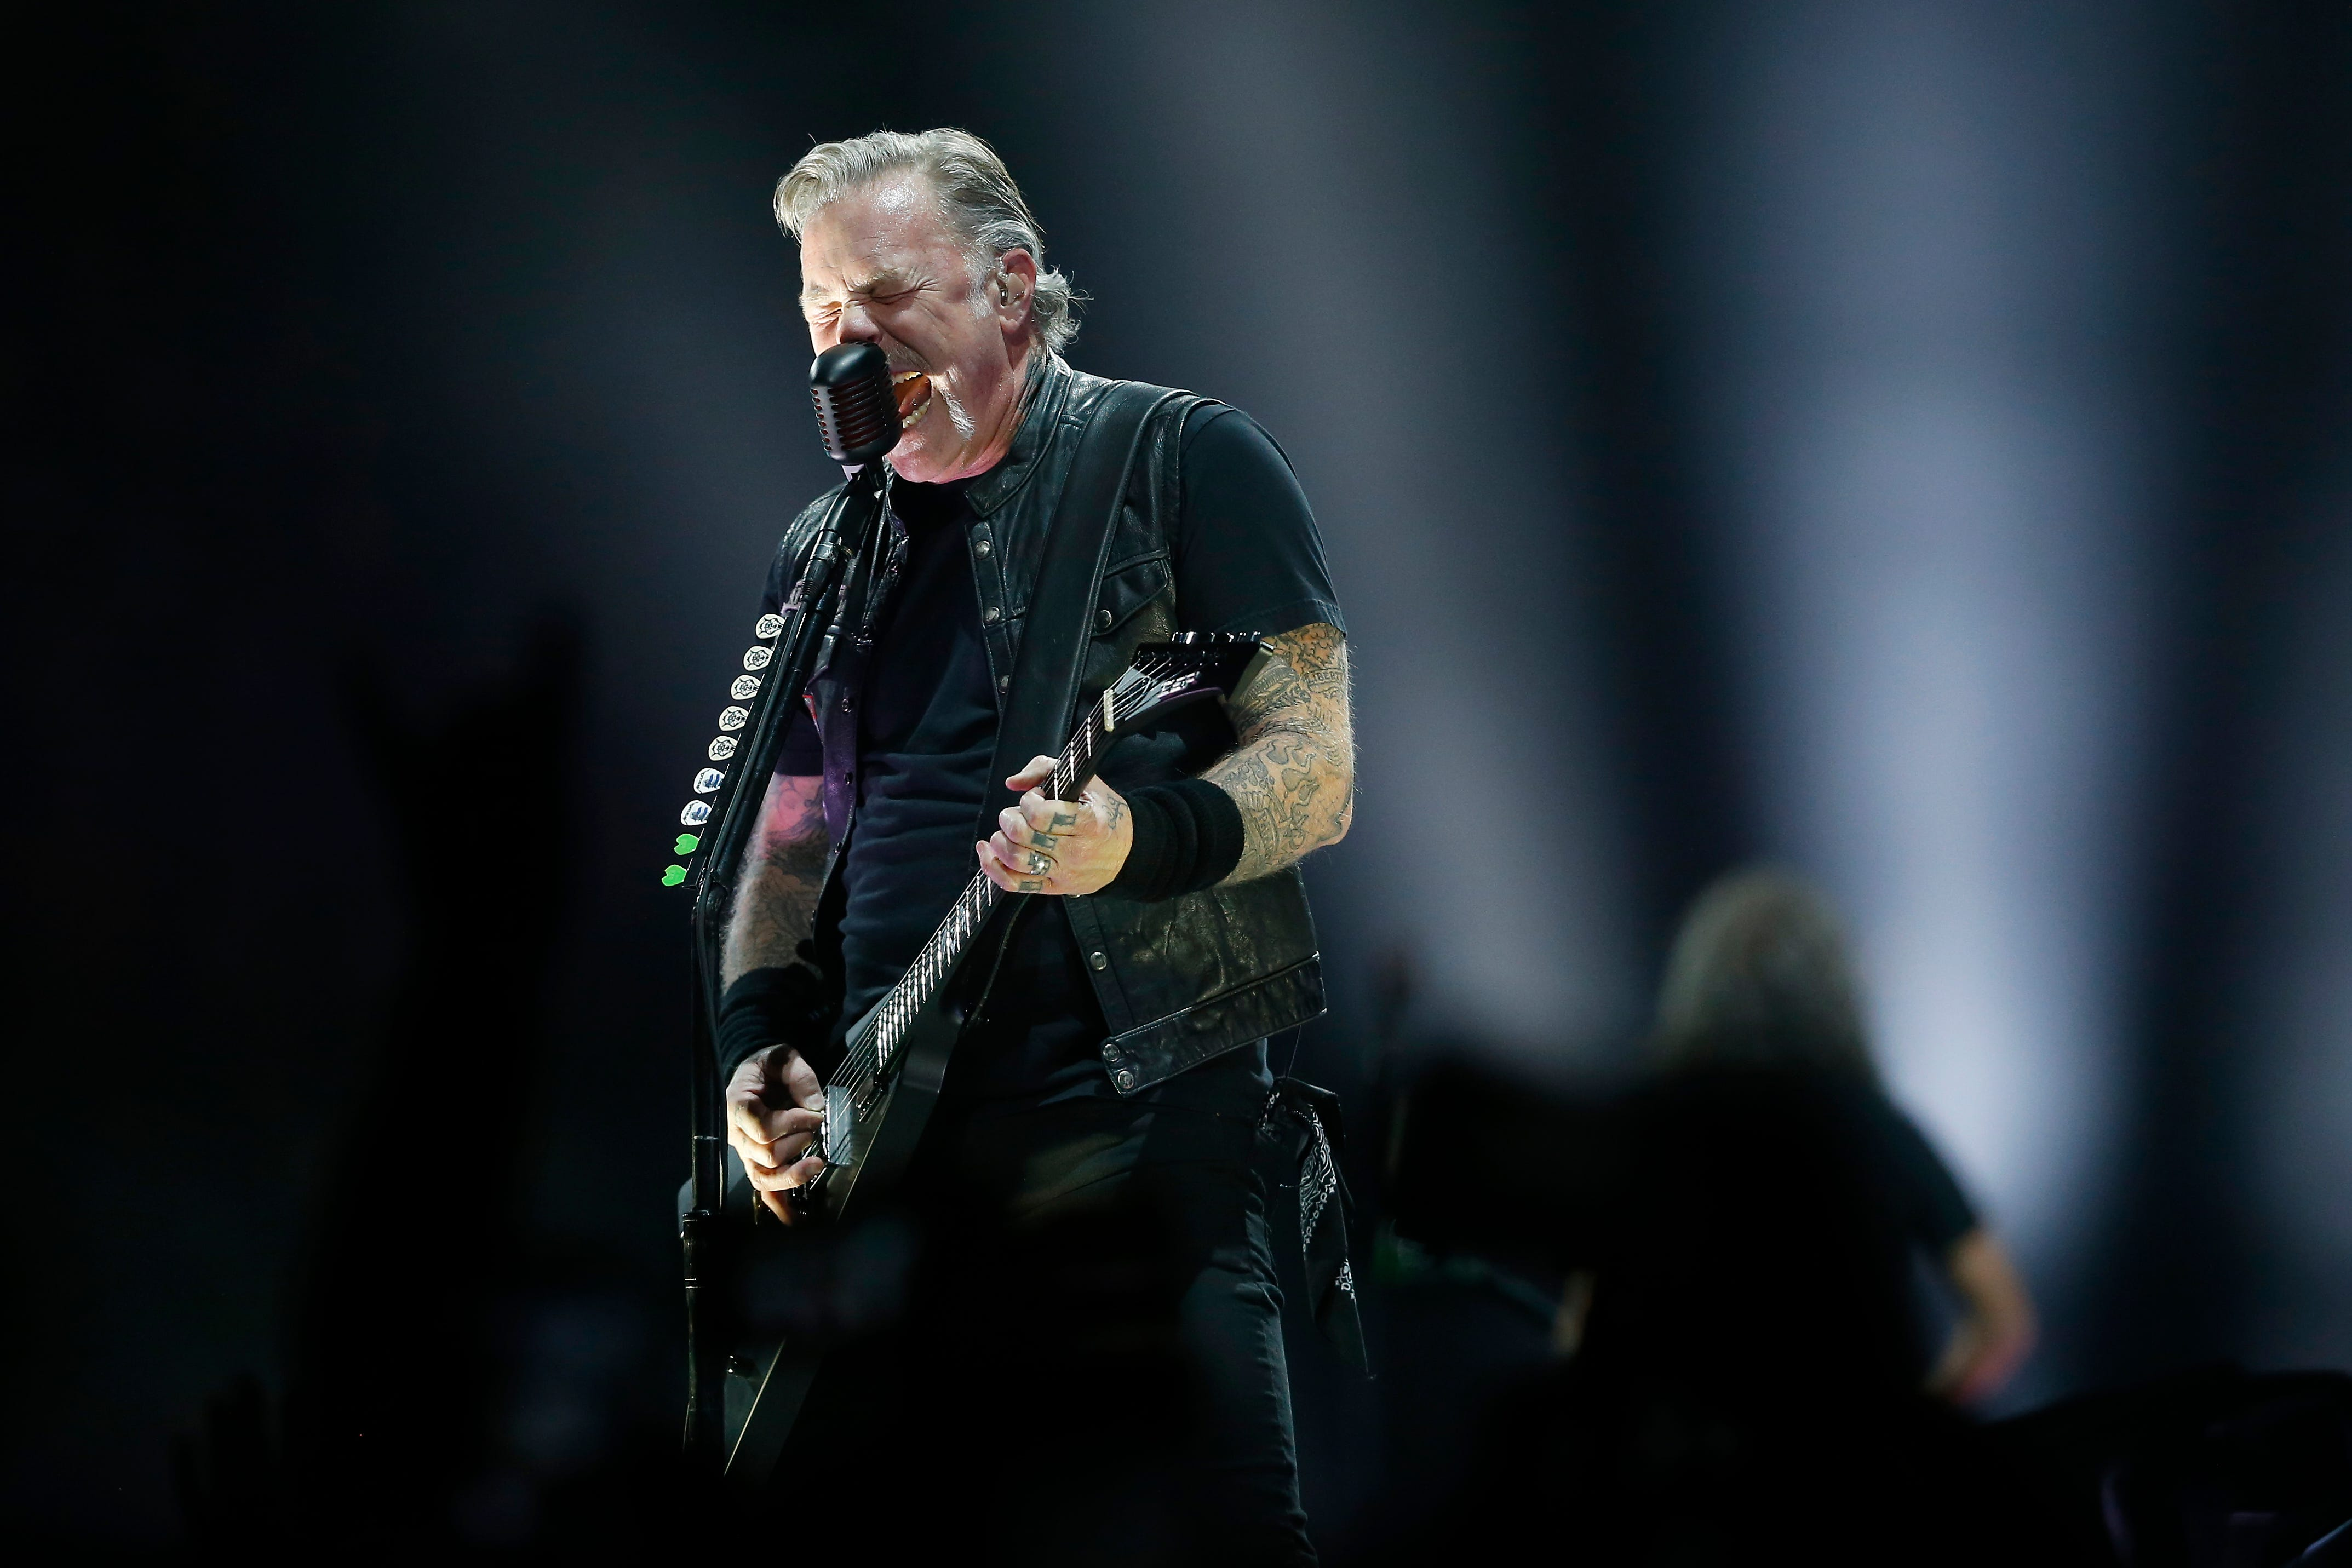 Metallica concert showing at two Greater Cincinnati drive-ins